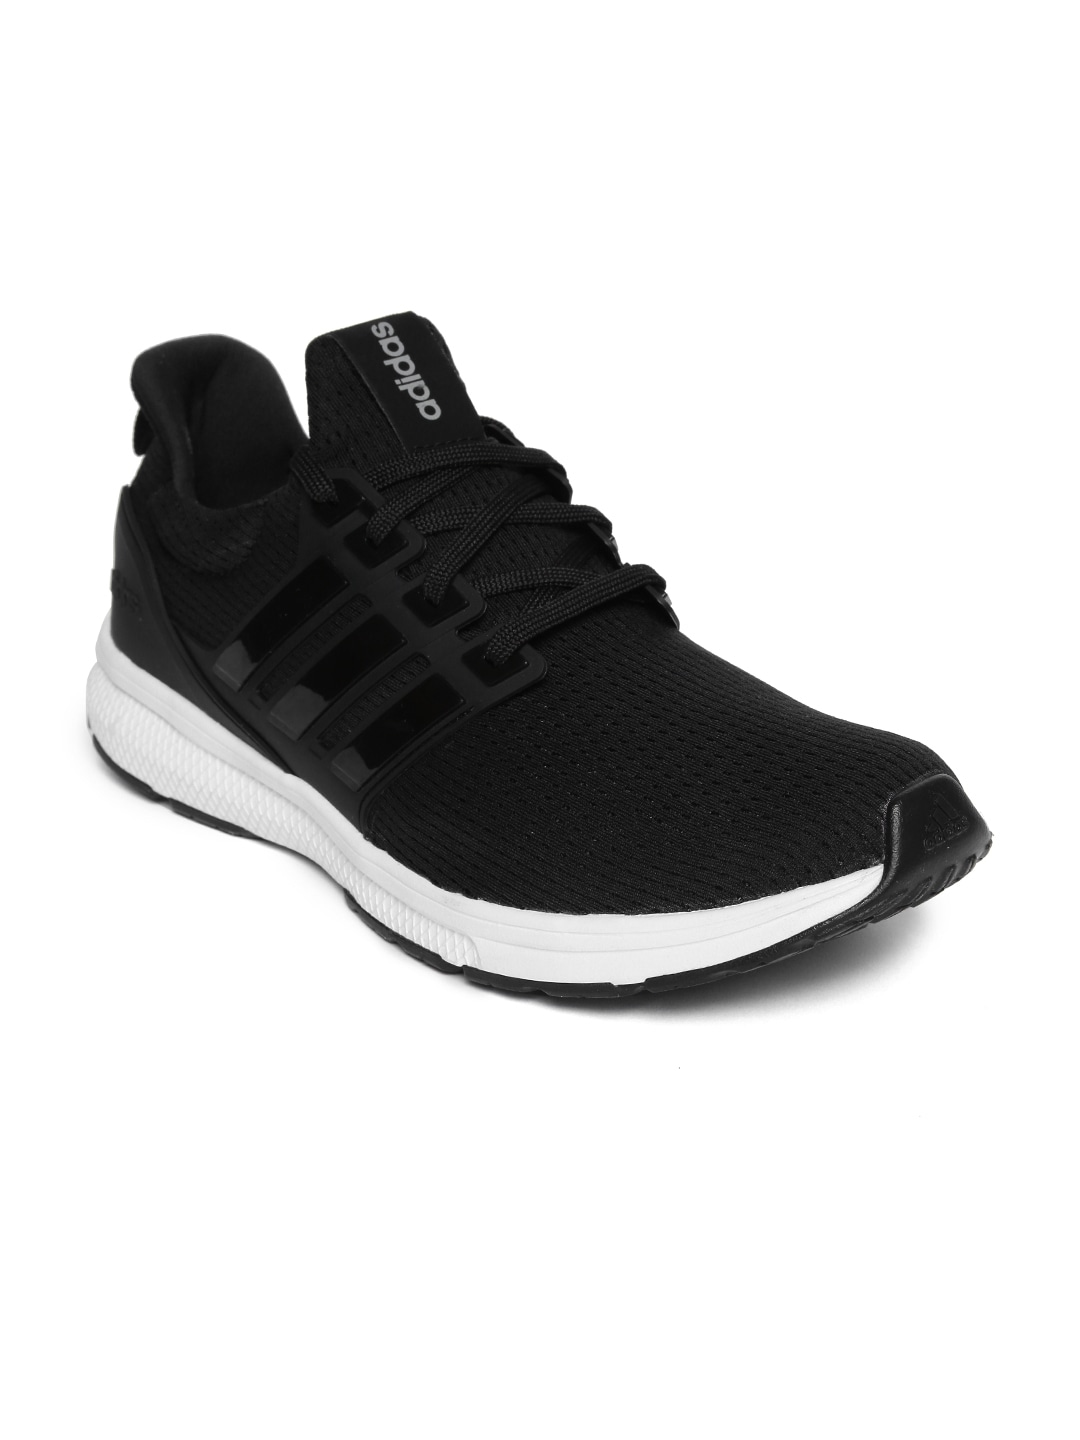 5a7069d8e254 Adidas Shoes - Buy Adidas Shoes for Men   Women Online - Myntra